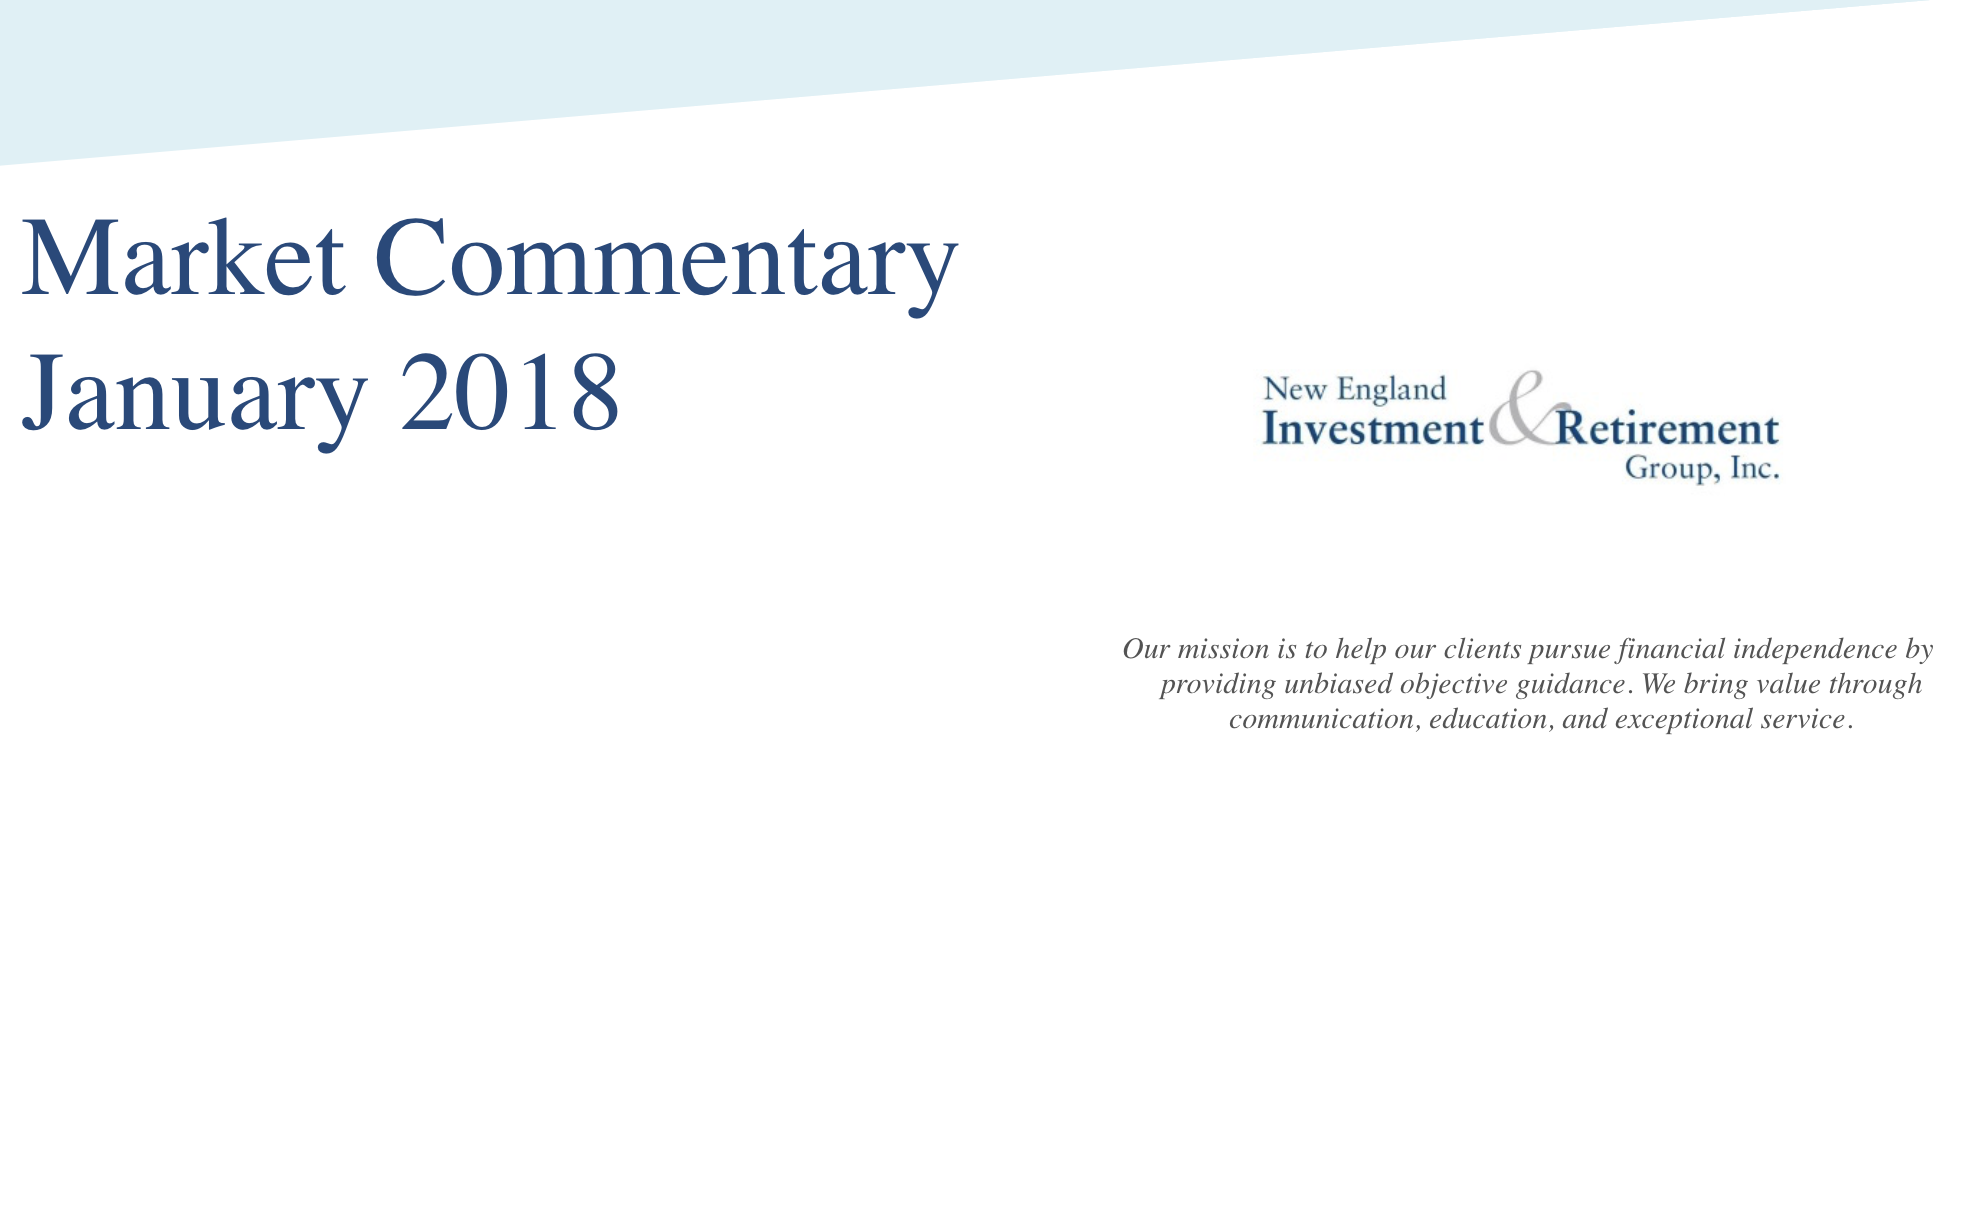 New England Investment and Retirement Group January 2018 Market Commentary